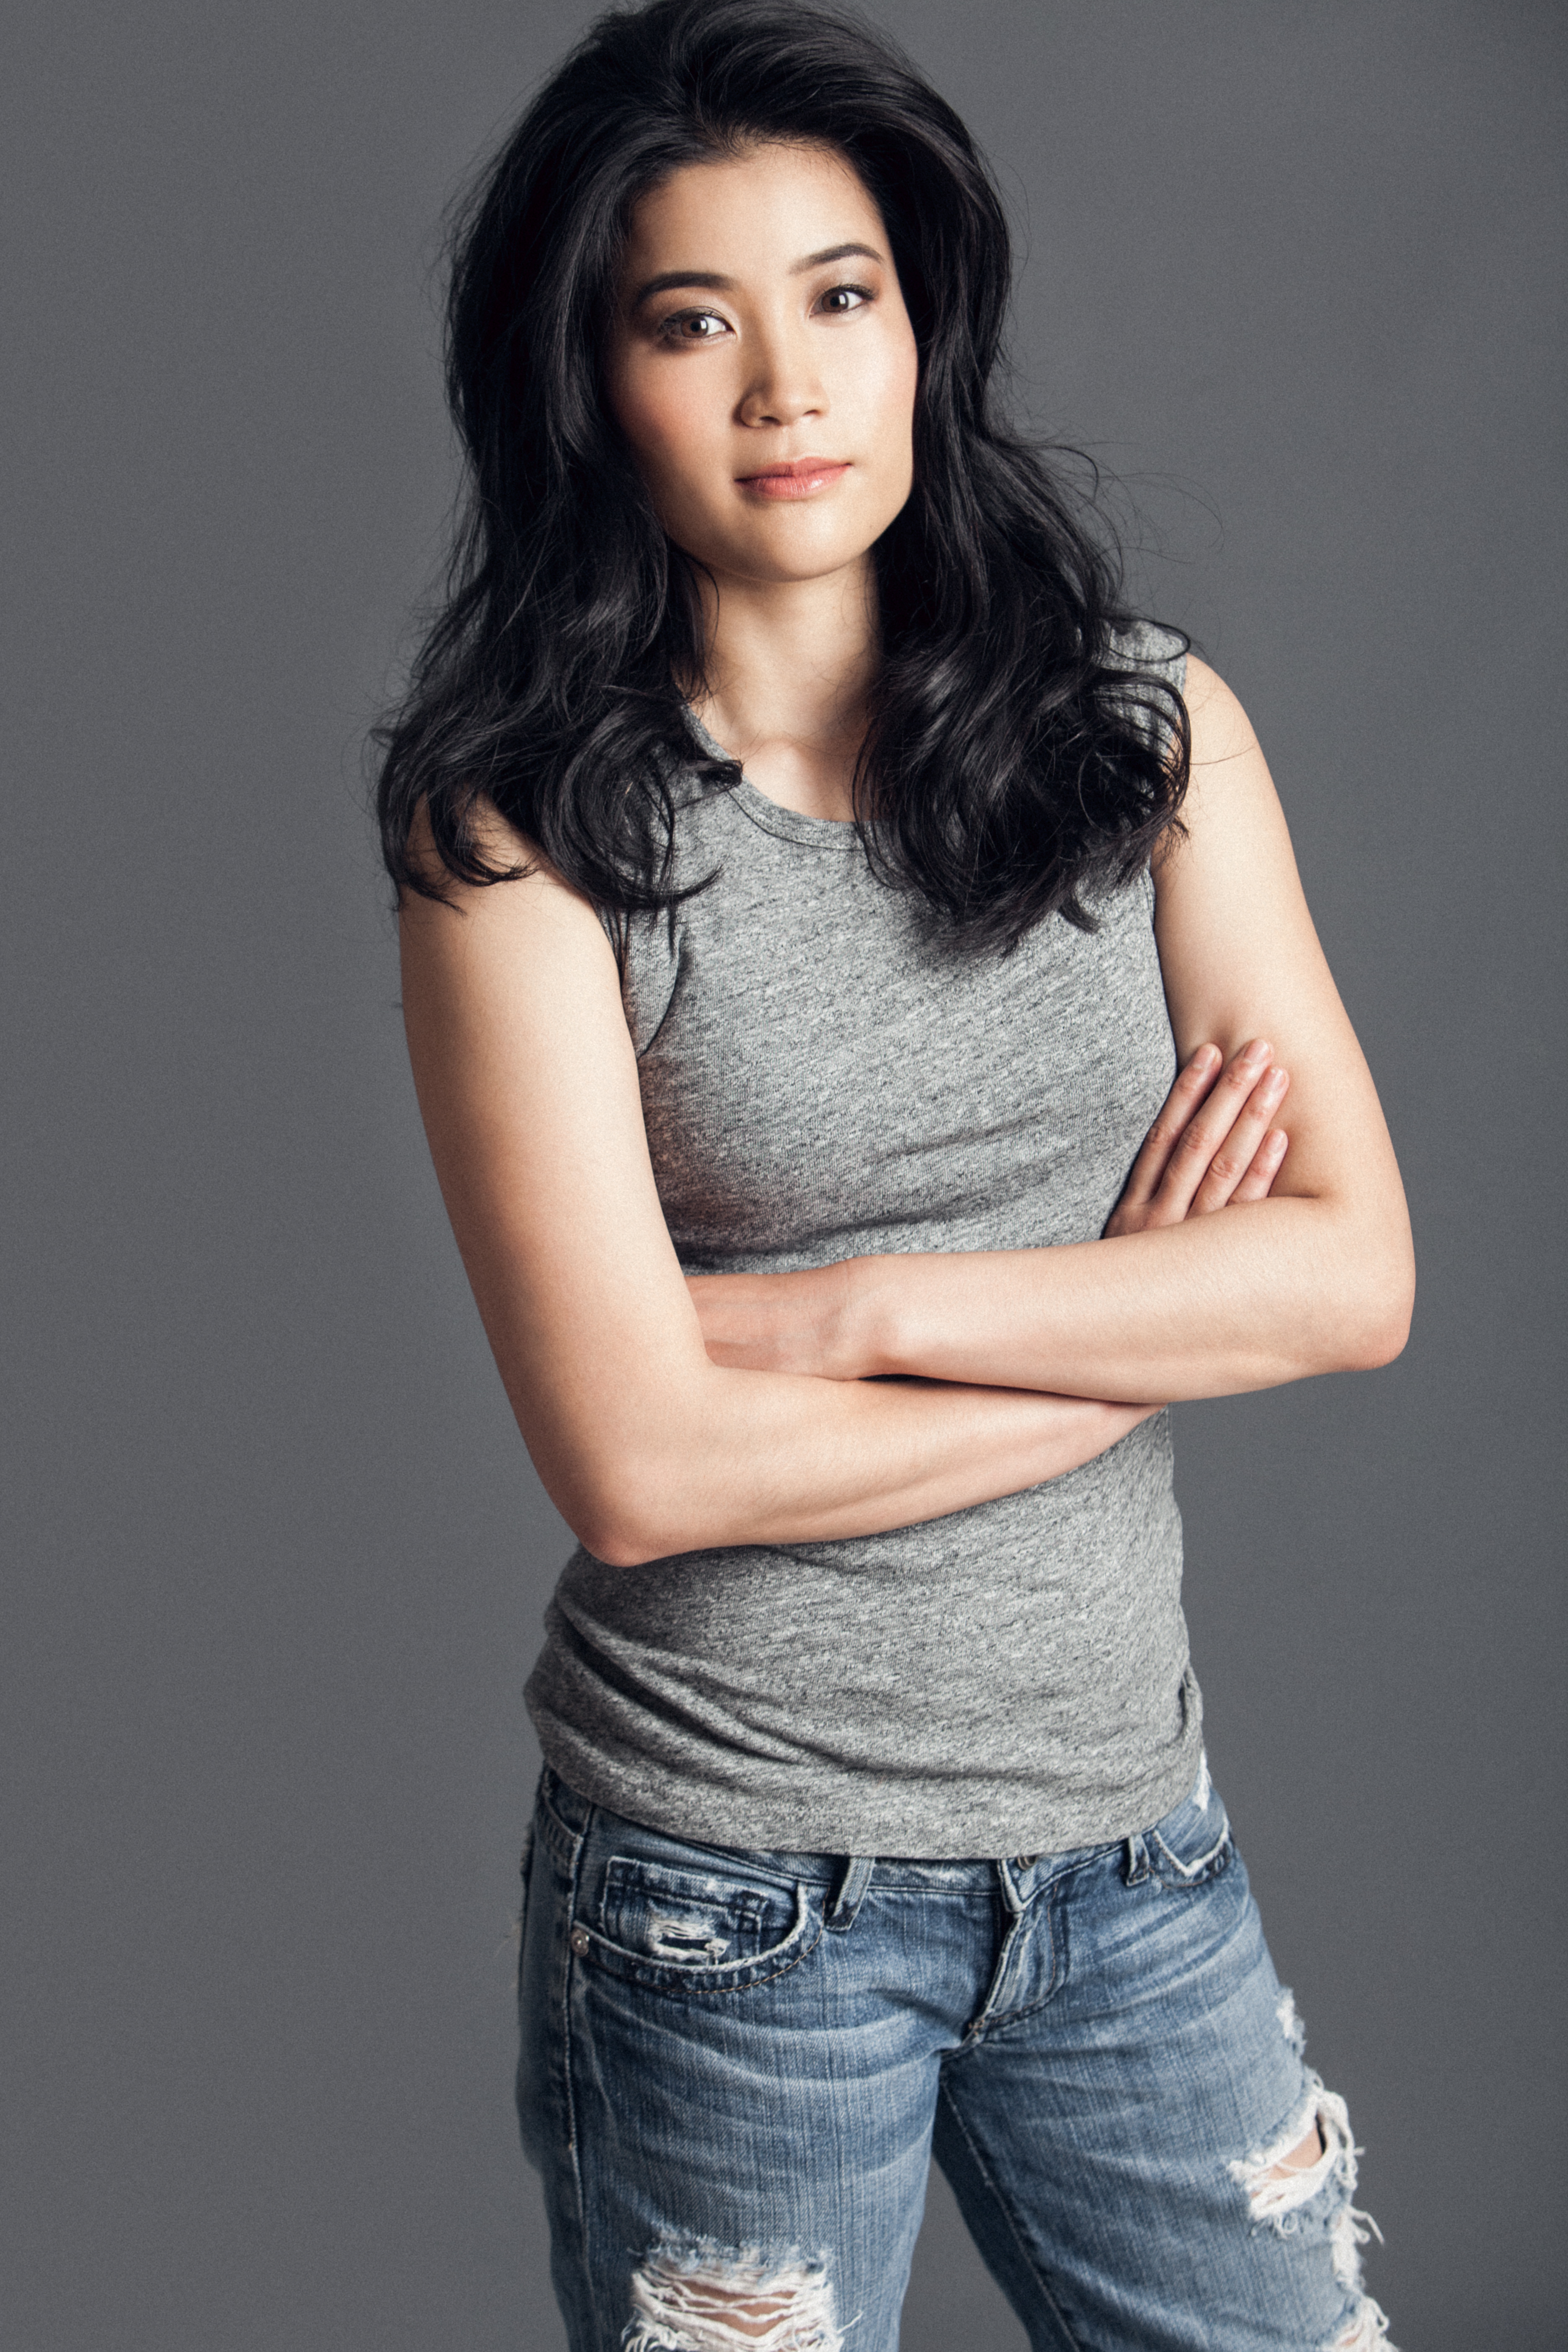 Quick Take: Jadyn Wong gives a quick look into S2 of